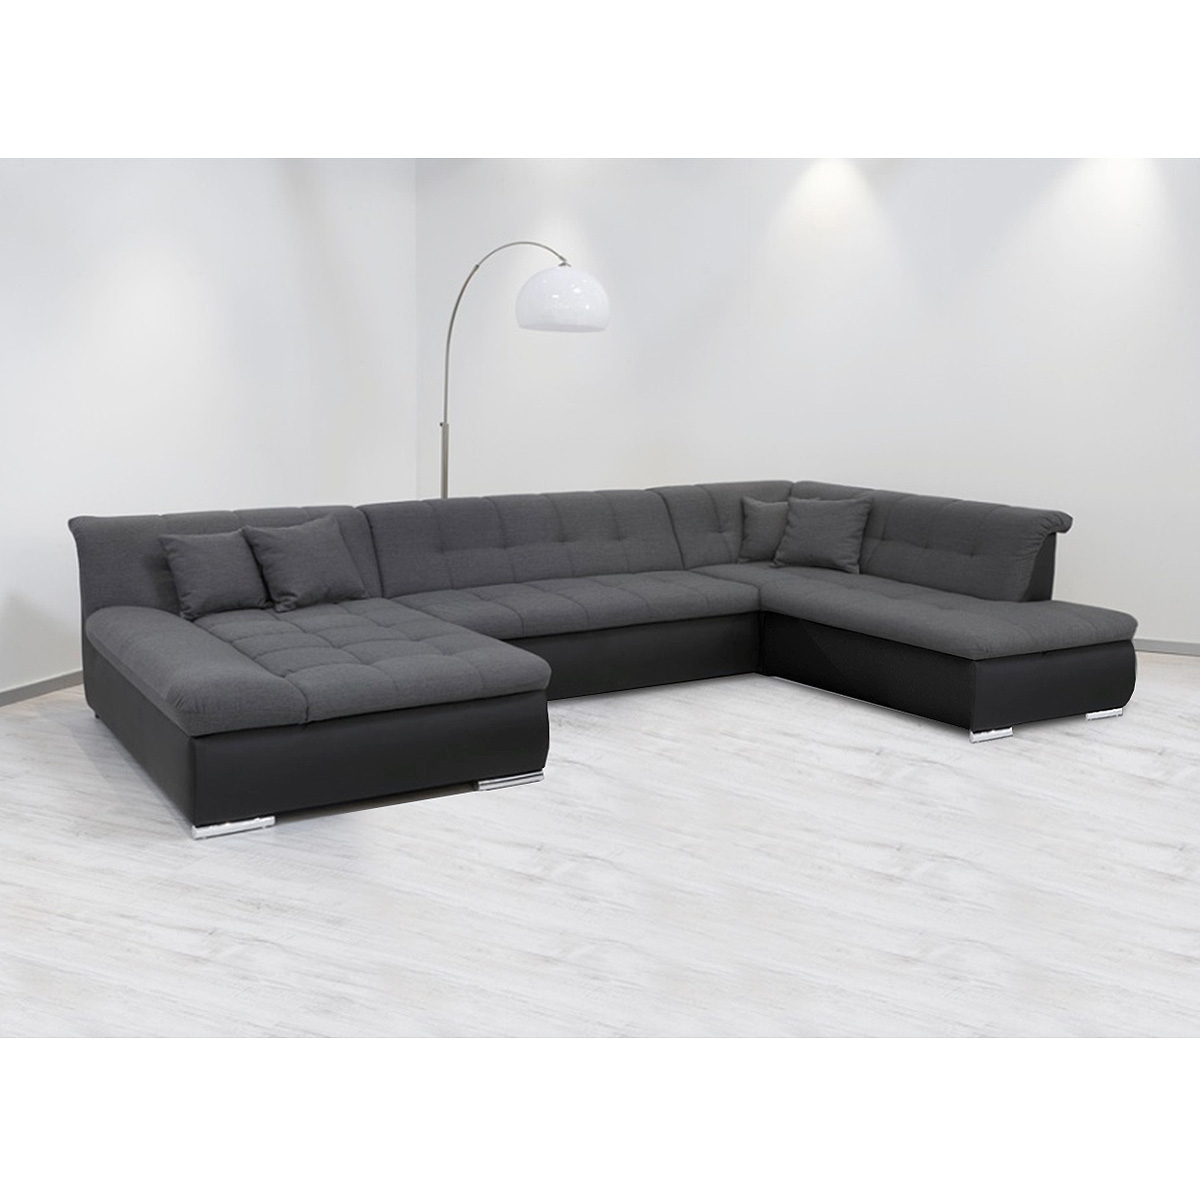 wohnlandschaft alabama ecksofa sofa in schwarz und grau mit funktion eur 978 95 picclick de. Black Bedroom Furniture Sets. Home Design Ideas